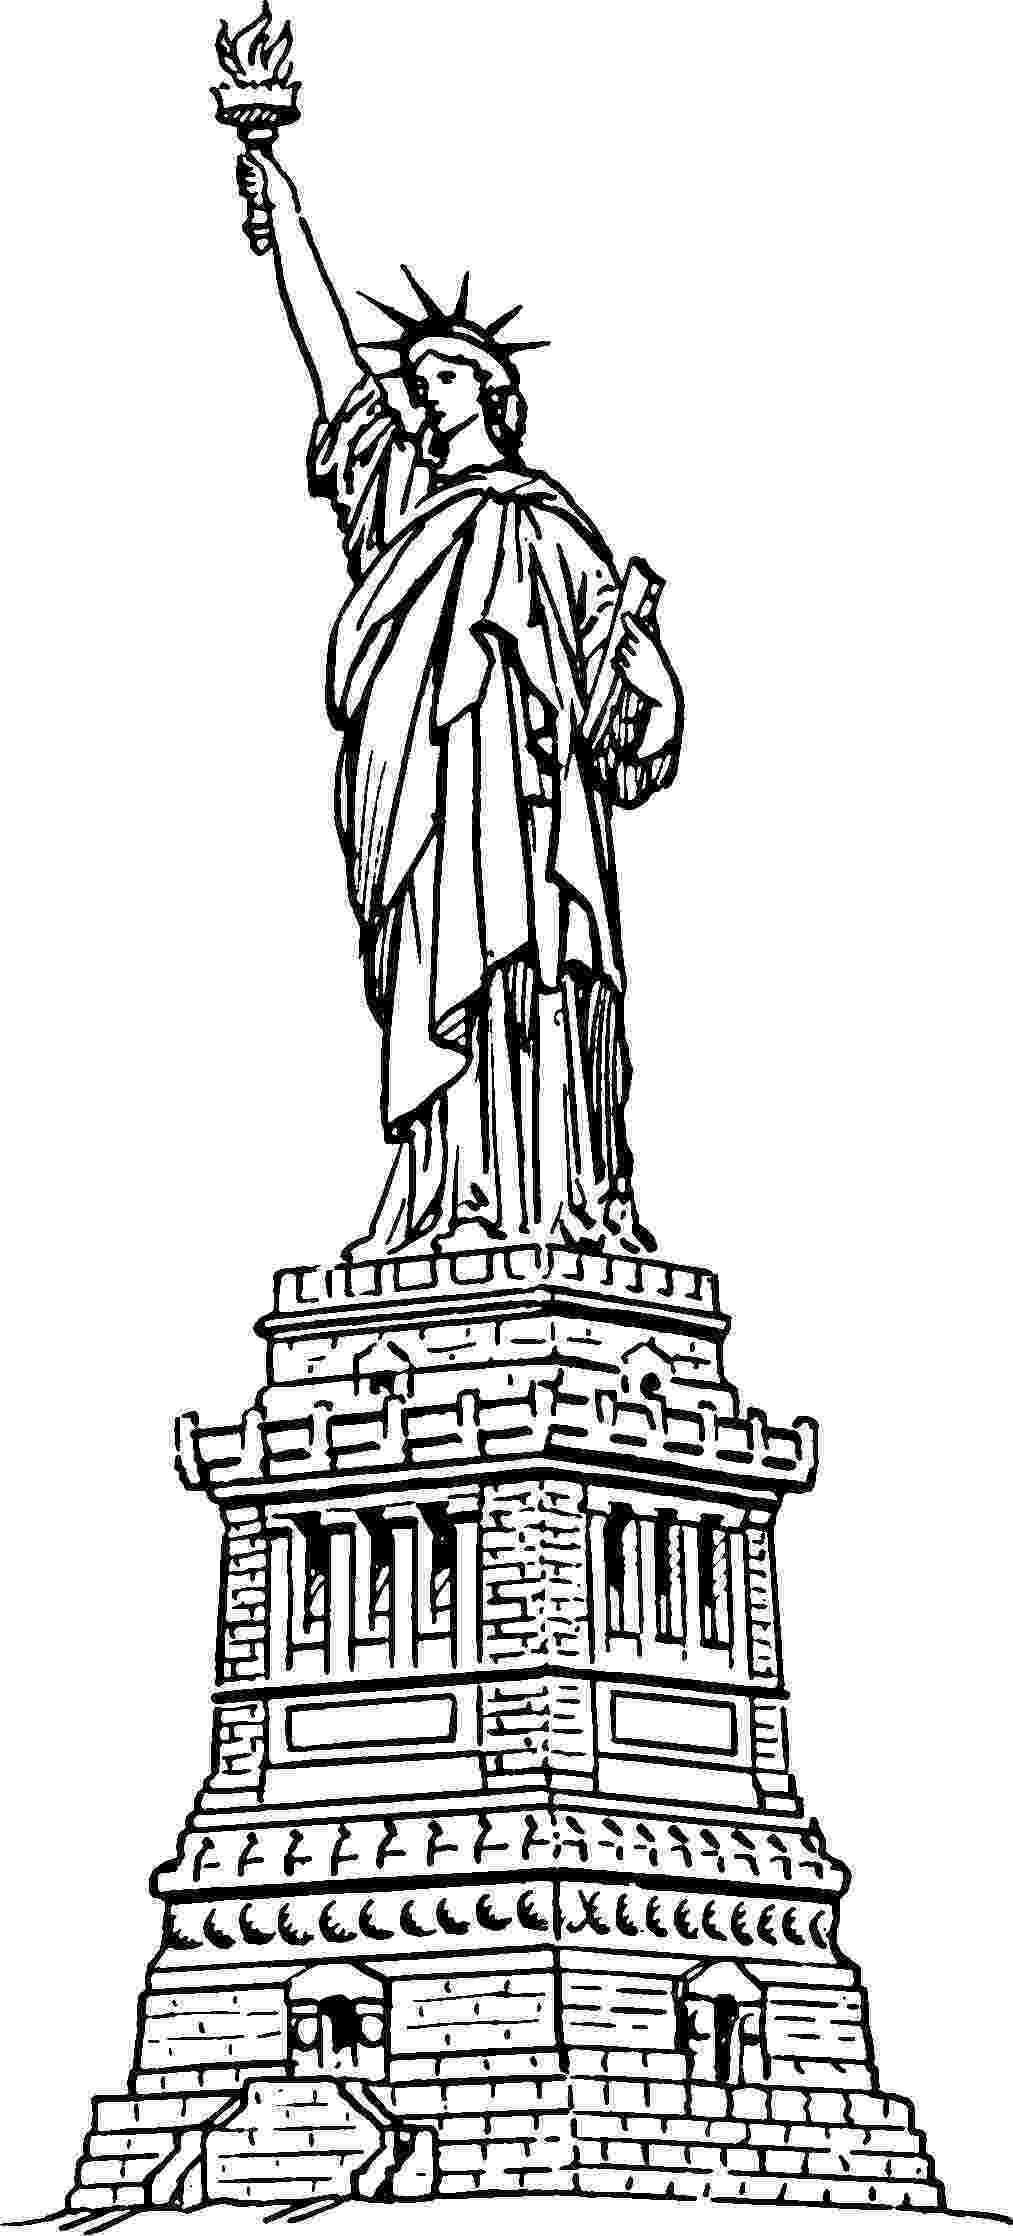 statue of liberty colouring pages 4 july statue of liberty coloring page download print pages liberty statue colouring of